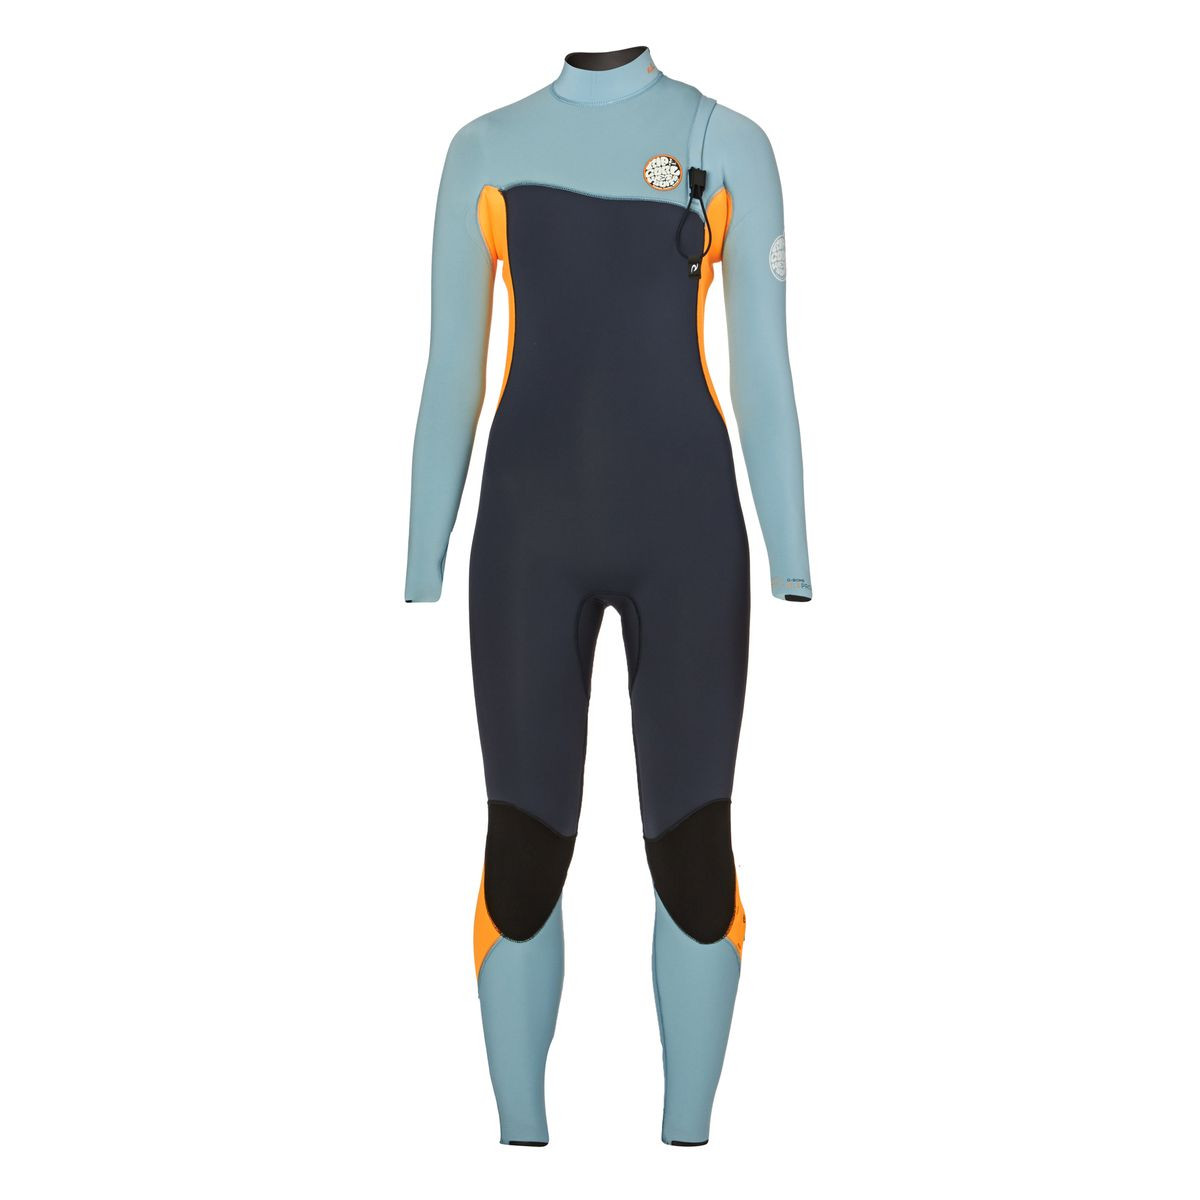 Rip Curl Womens G-Bomb Pro 5/3mm 2017 Zipperless Wetsuit - Slate/ Orange